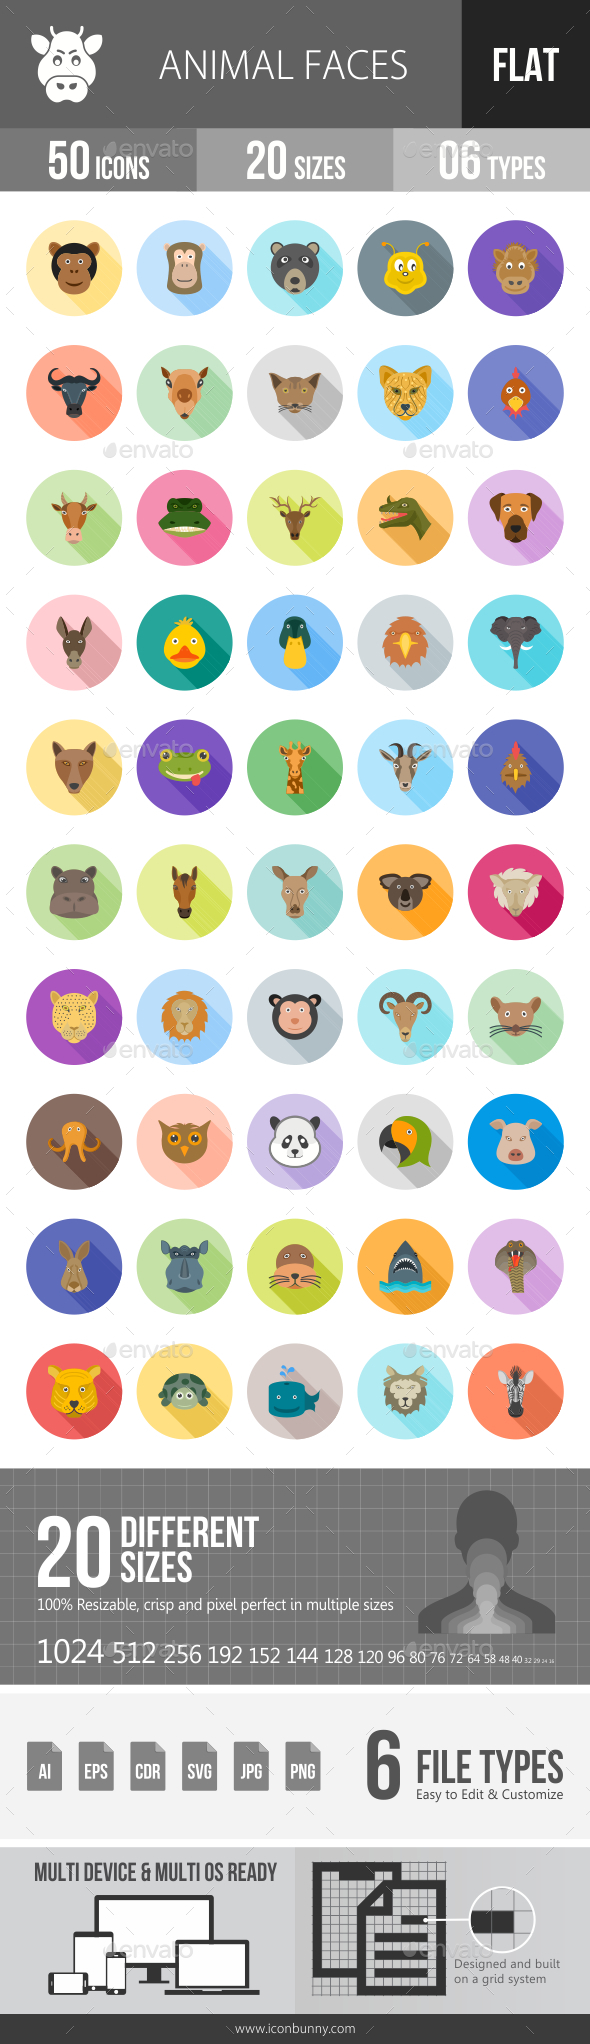 Animal Faces Flat Shadowed Icons - Icons